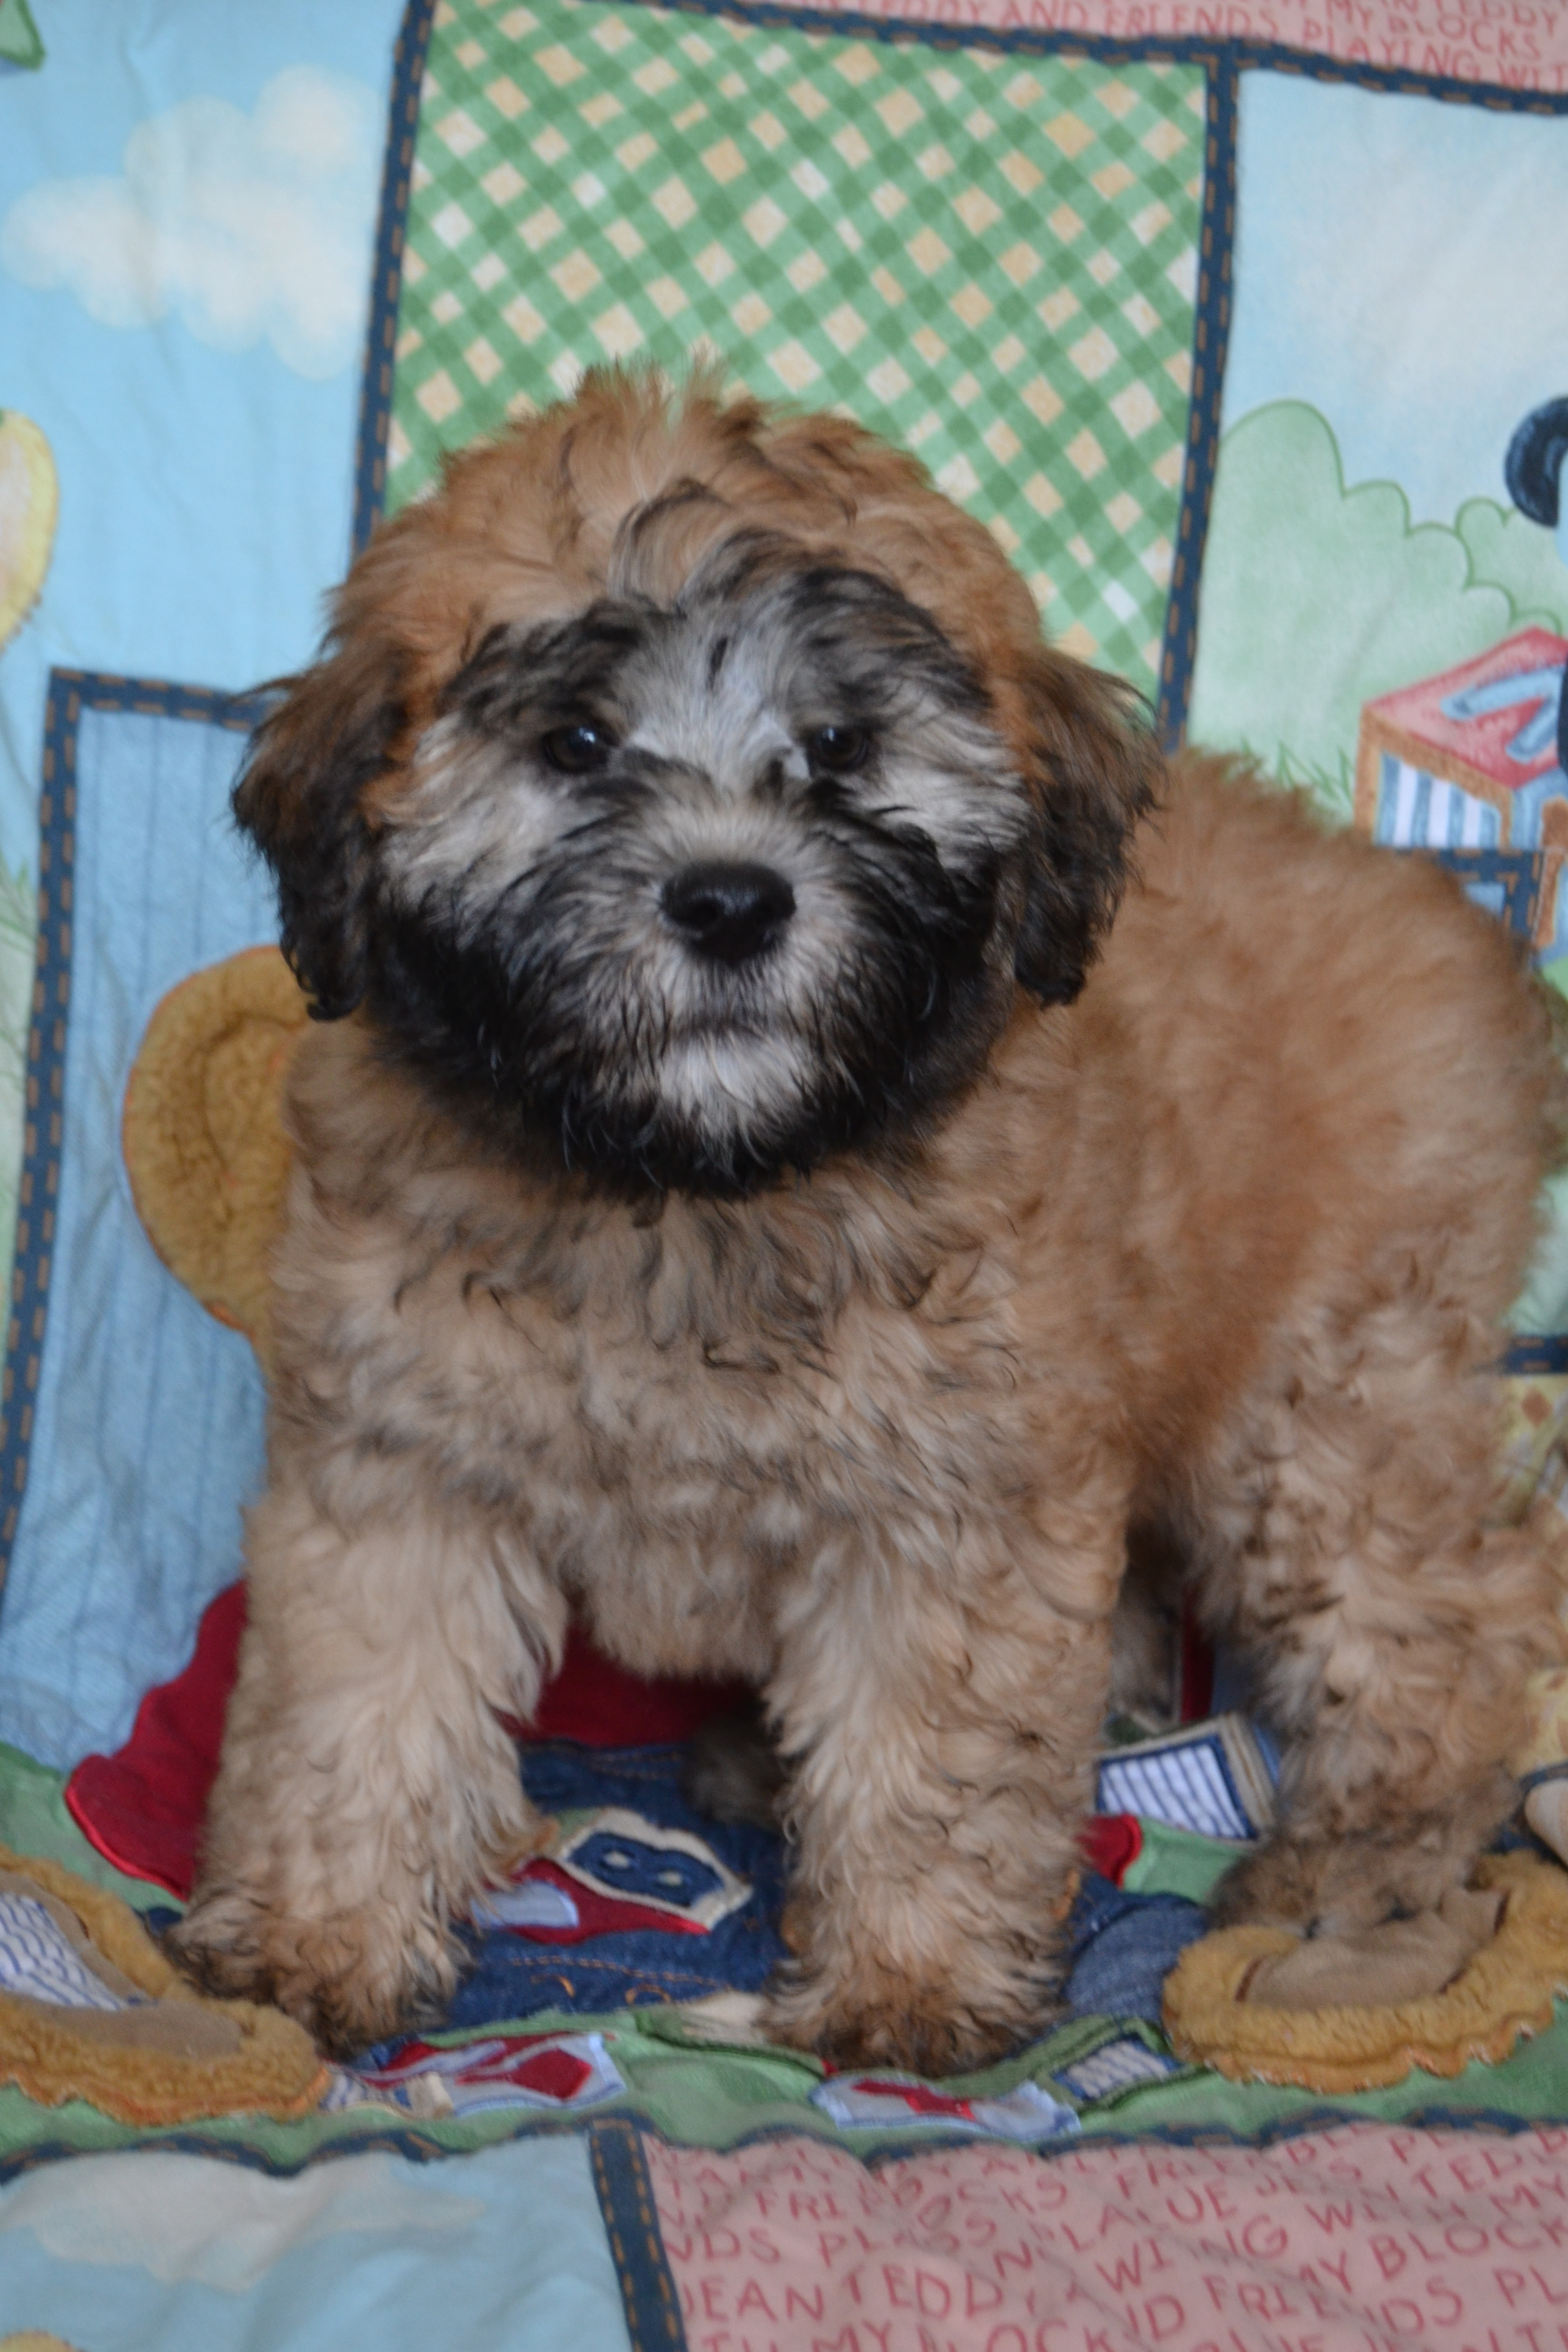 NJ Puppy Store Bergen County - New Jersey 201-773-8280